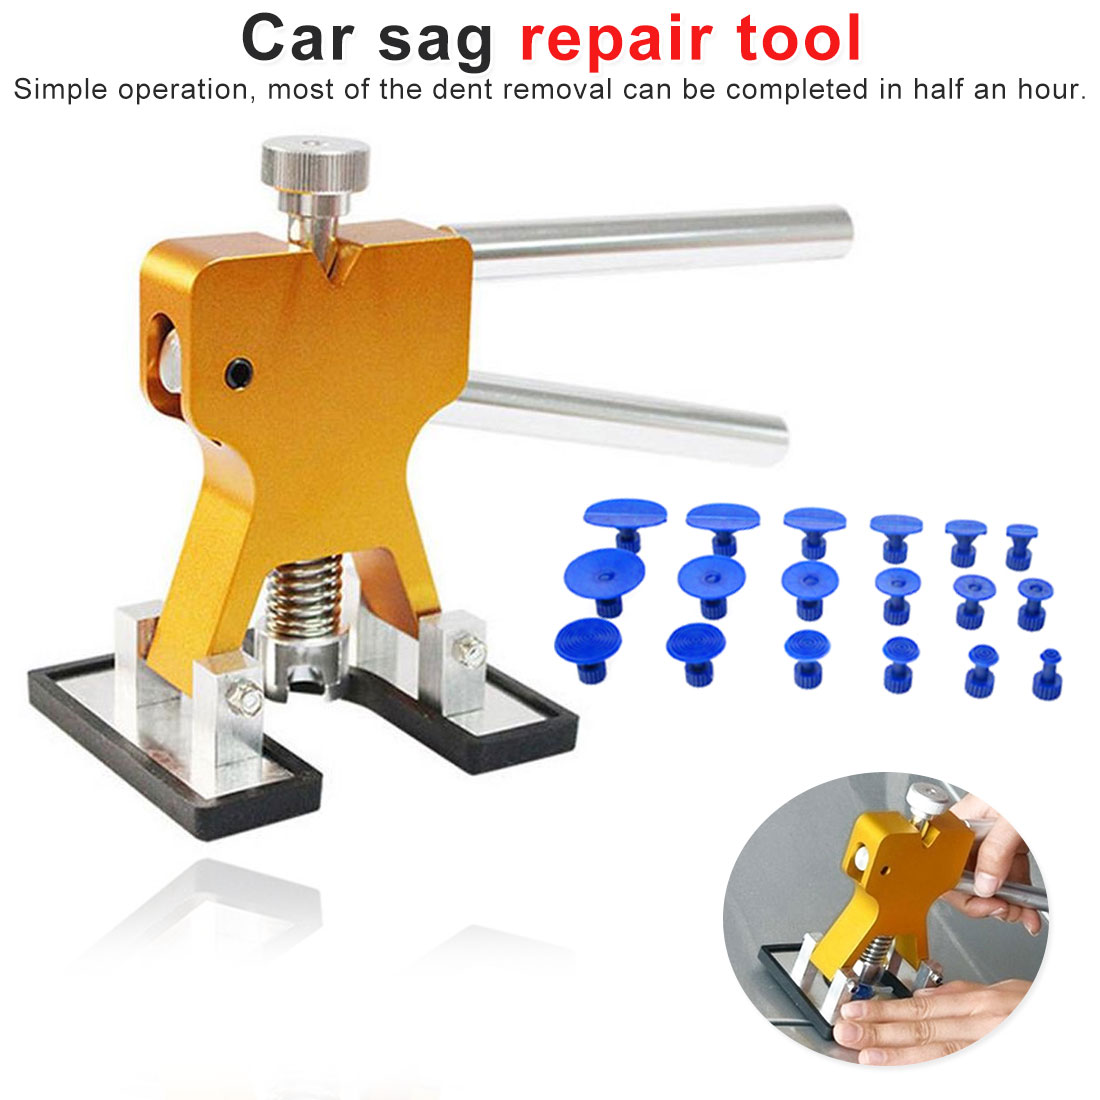 Auto Body Paintless Dent Repair Tools Glue Puller Tabs Removal Kit Madezz 36 Pcs Car Puller Tabs